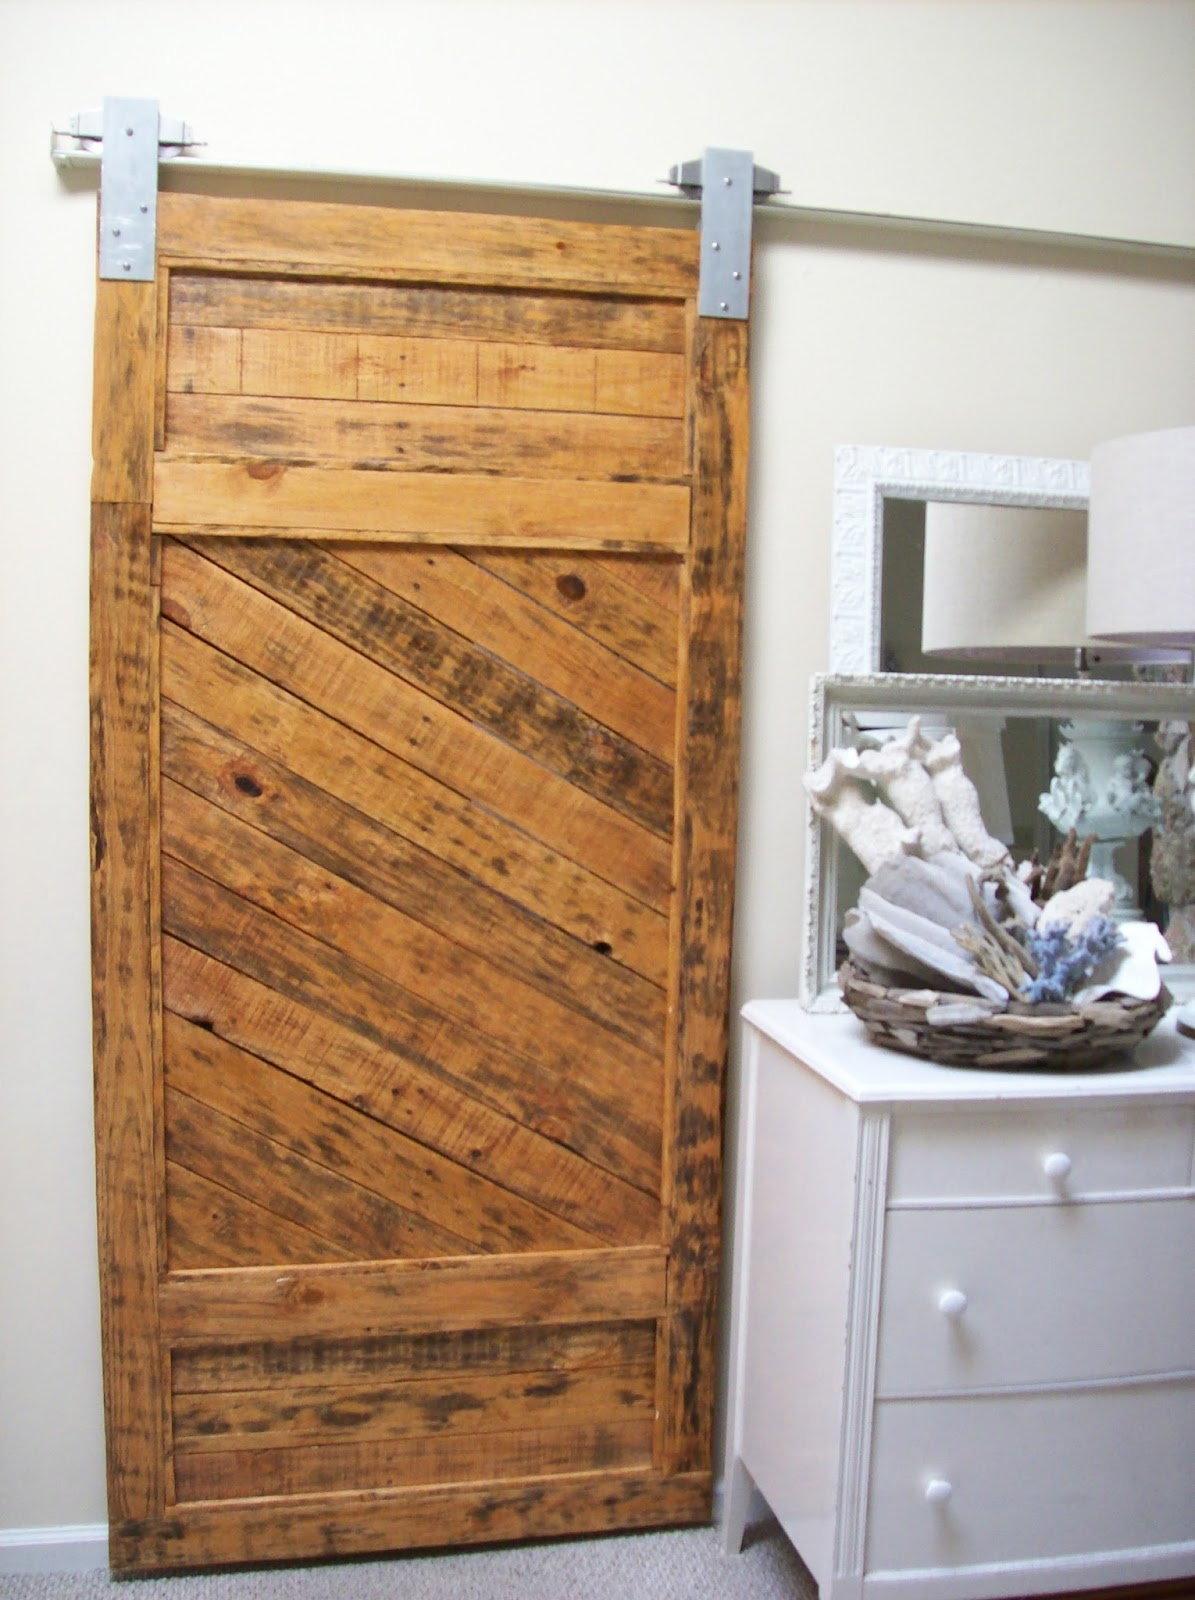 & The Pineapple Room: Barn Door